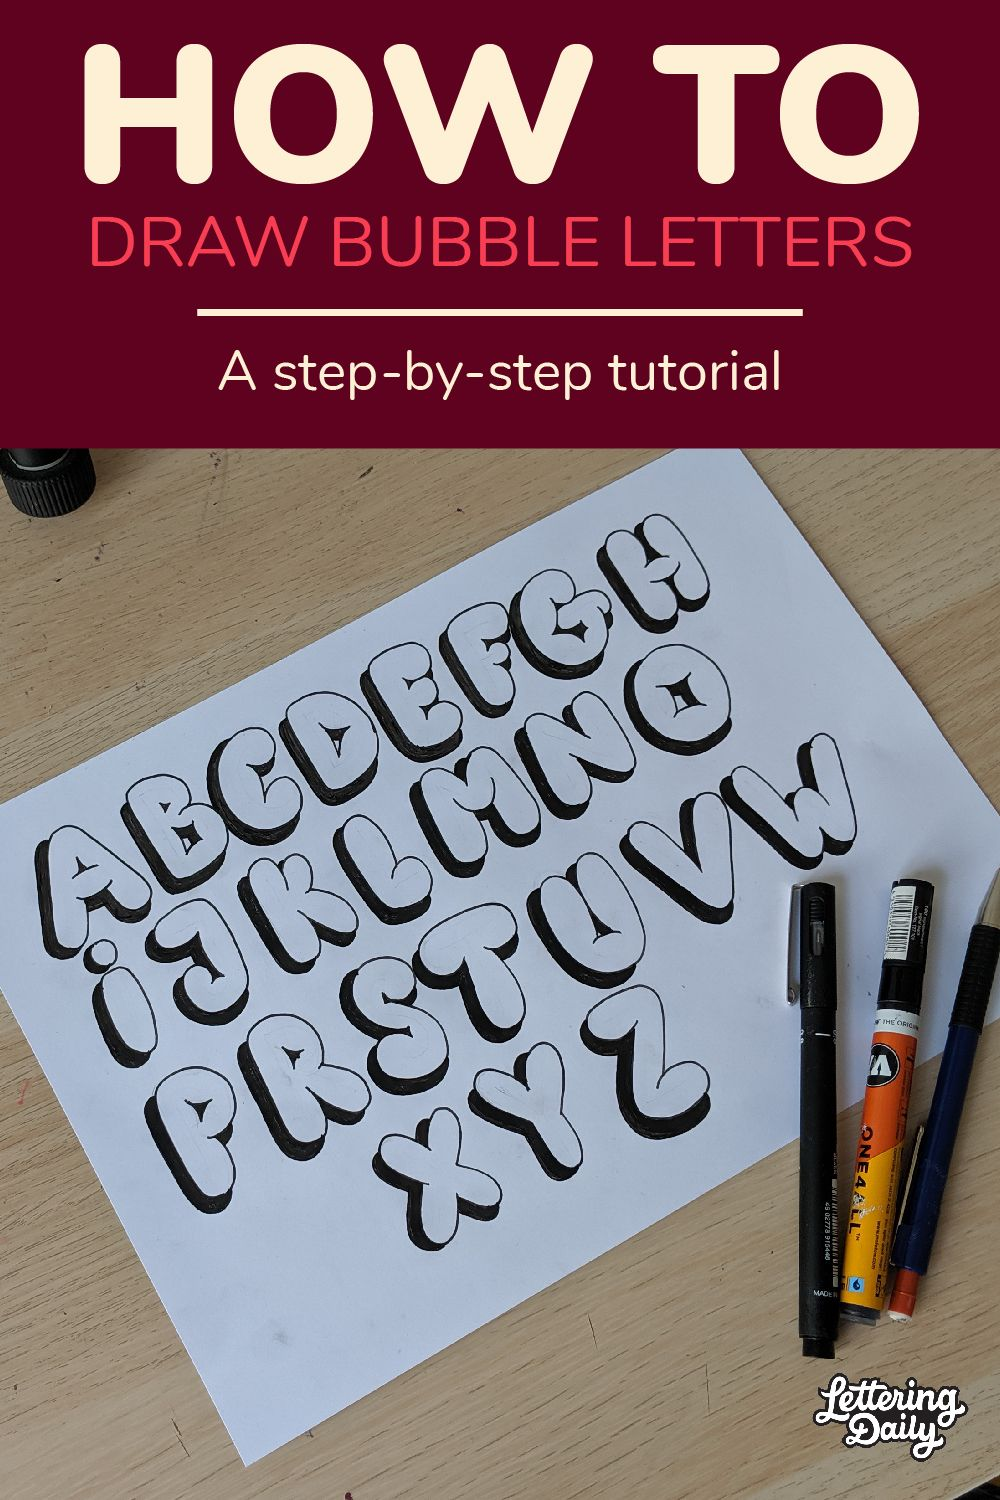 How To Draw Bubble Letters Step By Step Tutorial (2020